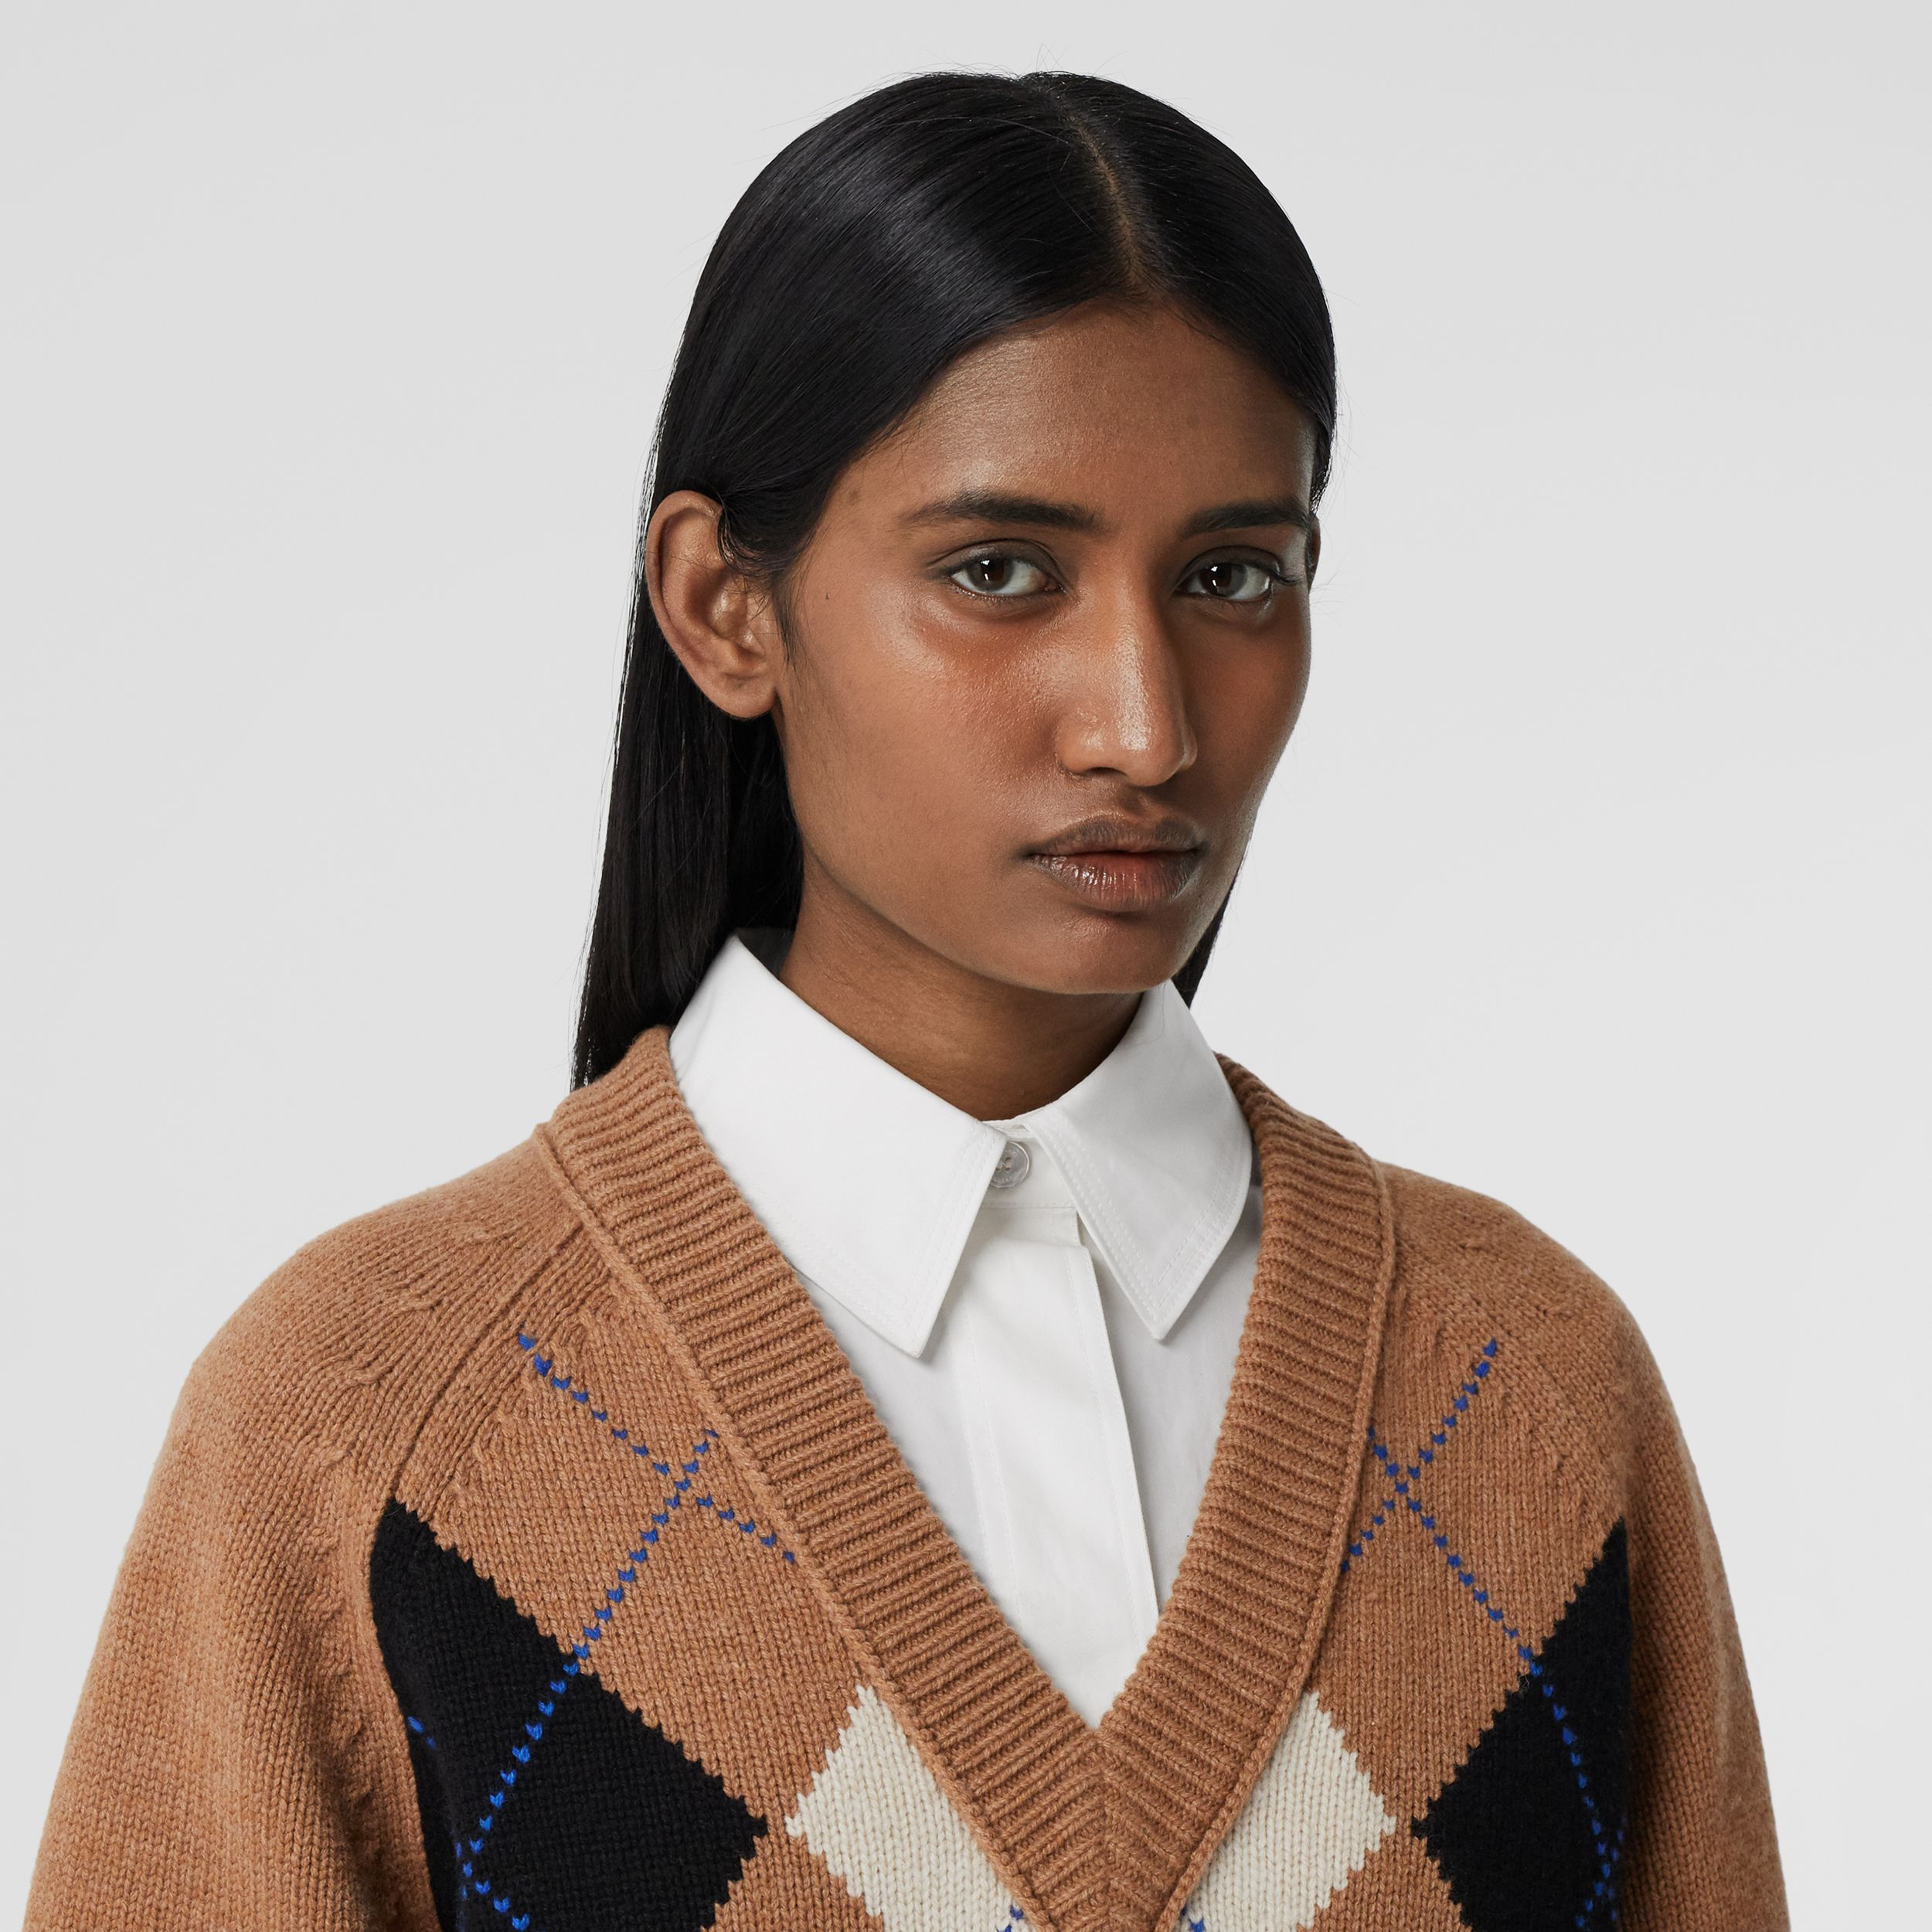 Cut-out Detail Argyle Intarsia Wool Cashmere Sweater in Camel - Women | Burberry Australia - 2